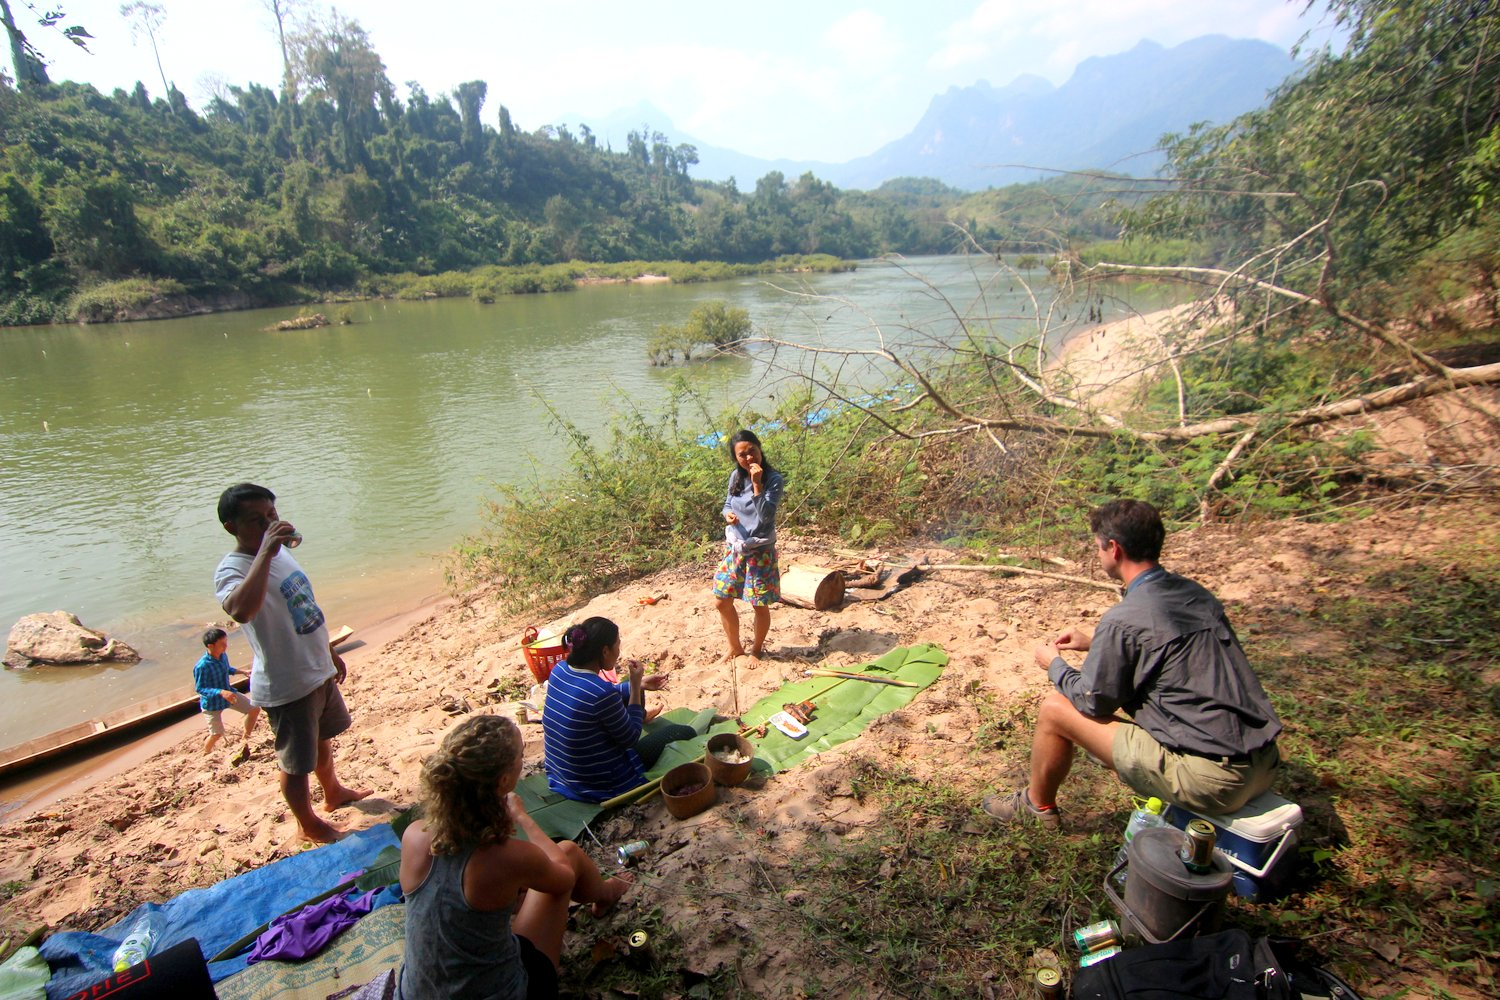 Laos River Picnic